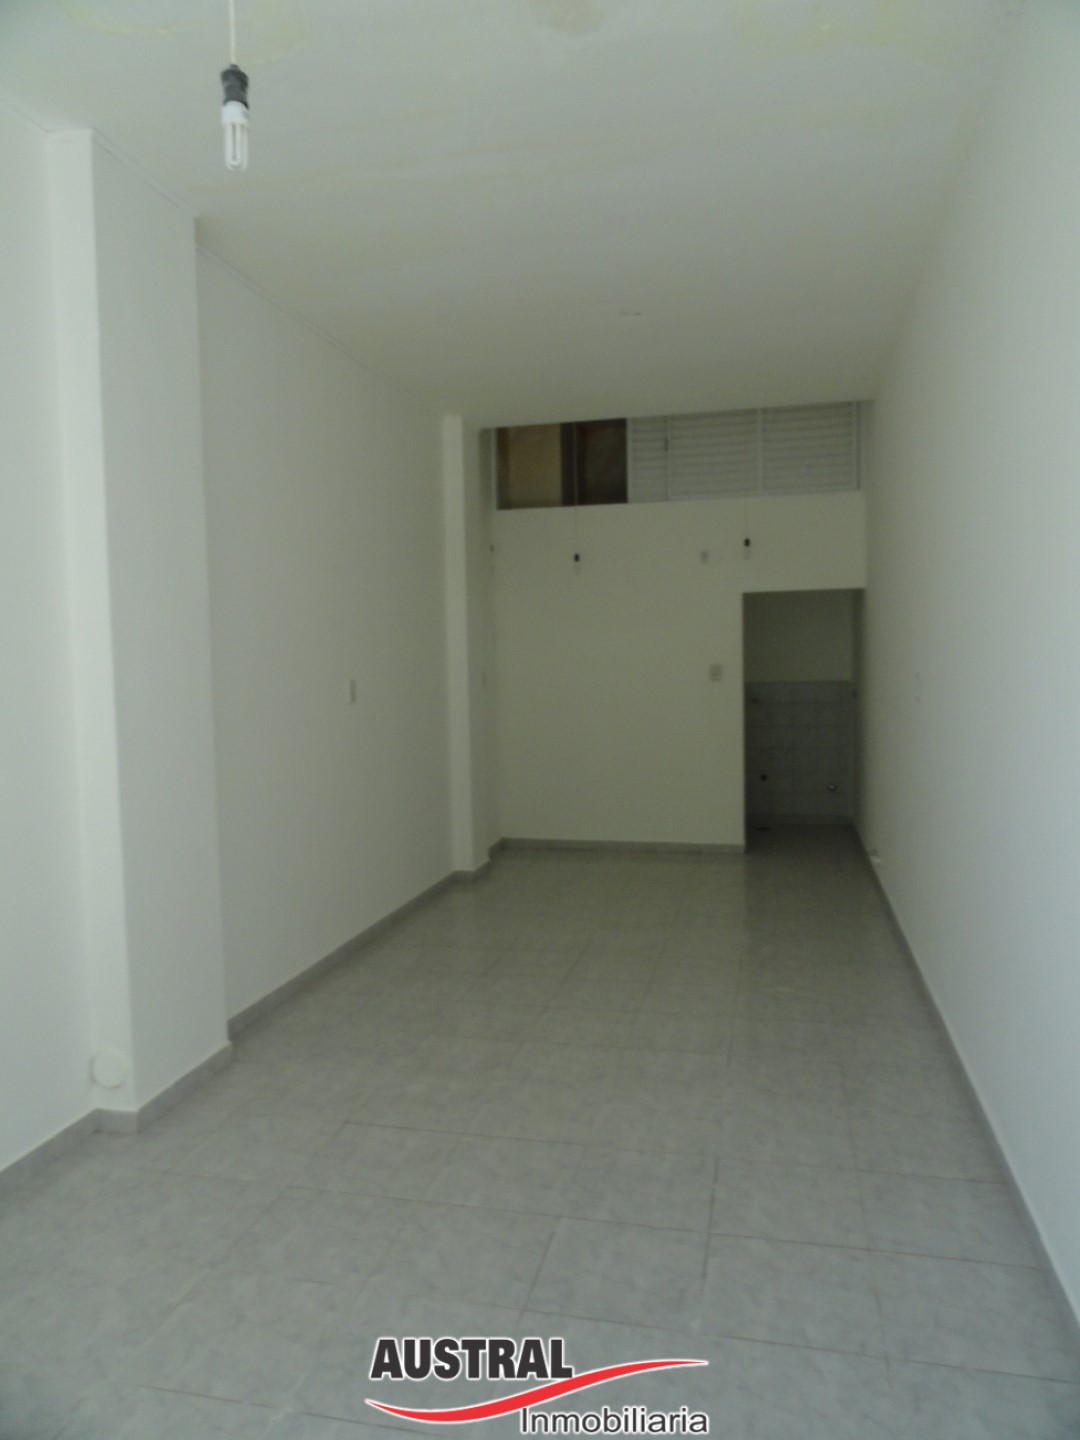 M. DONNET 1636 LOCAL COMERCIAL ZONA CENTRO Nº 1